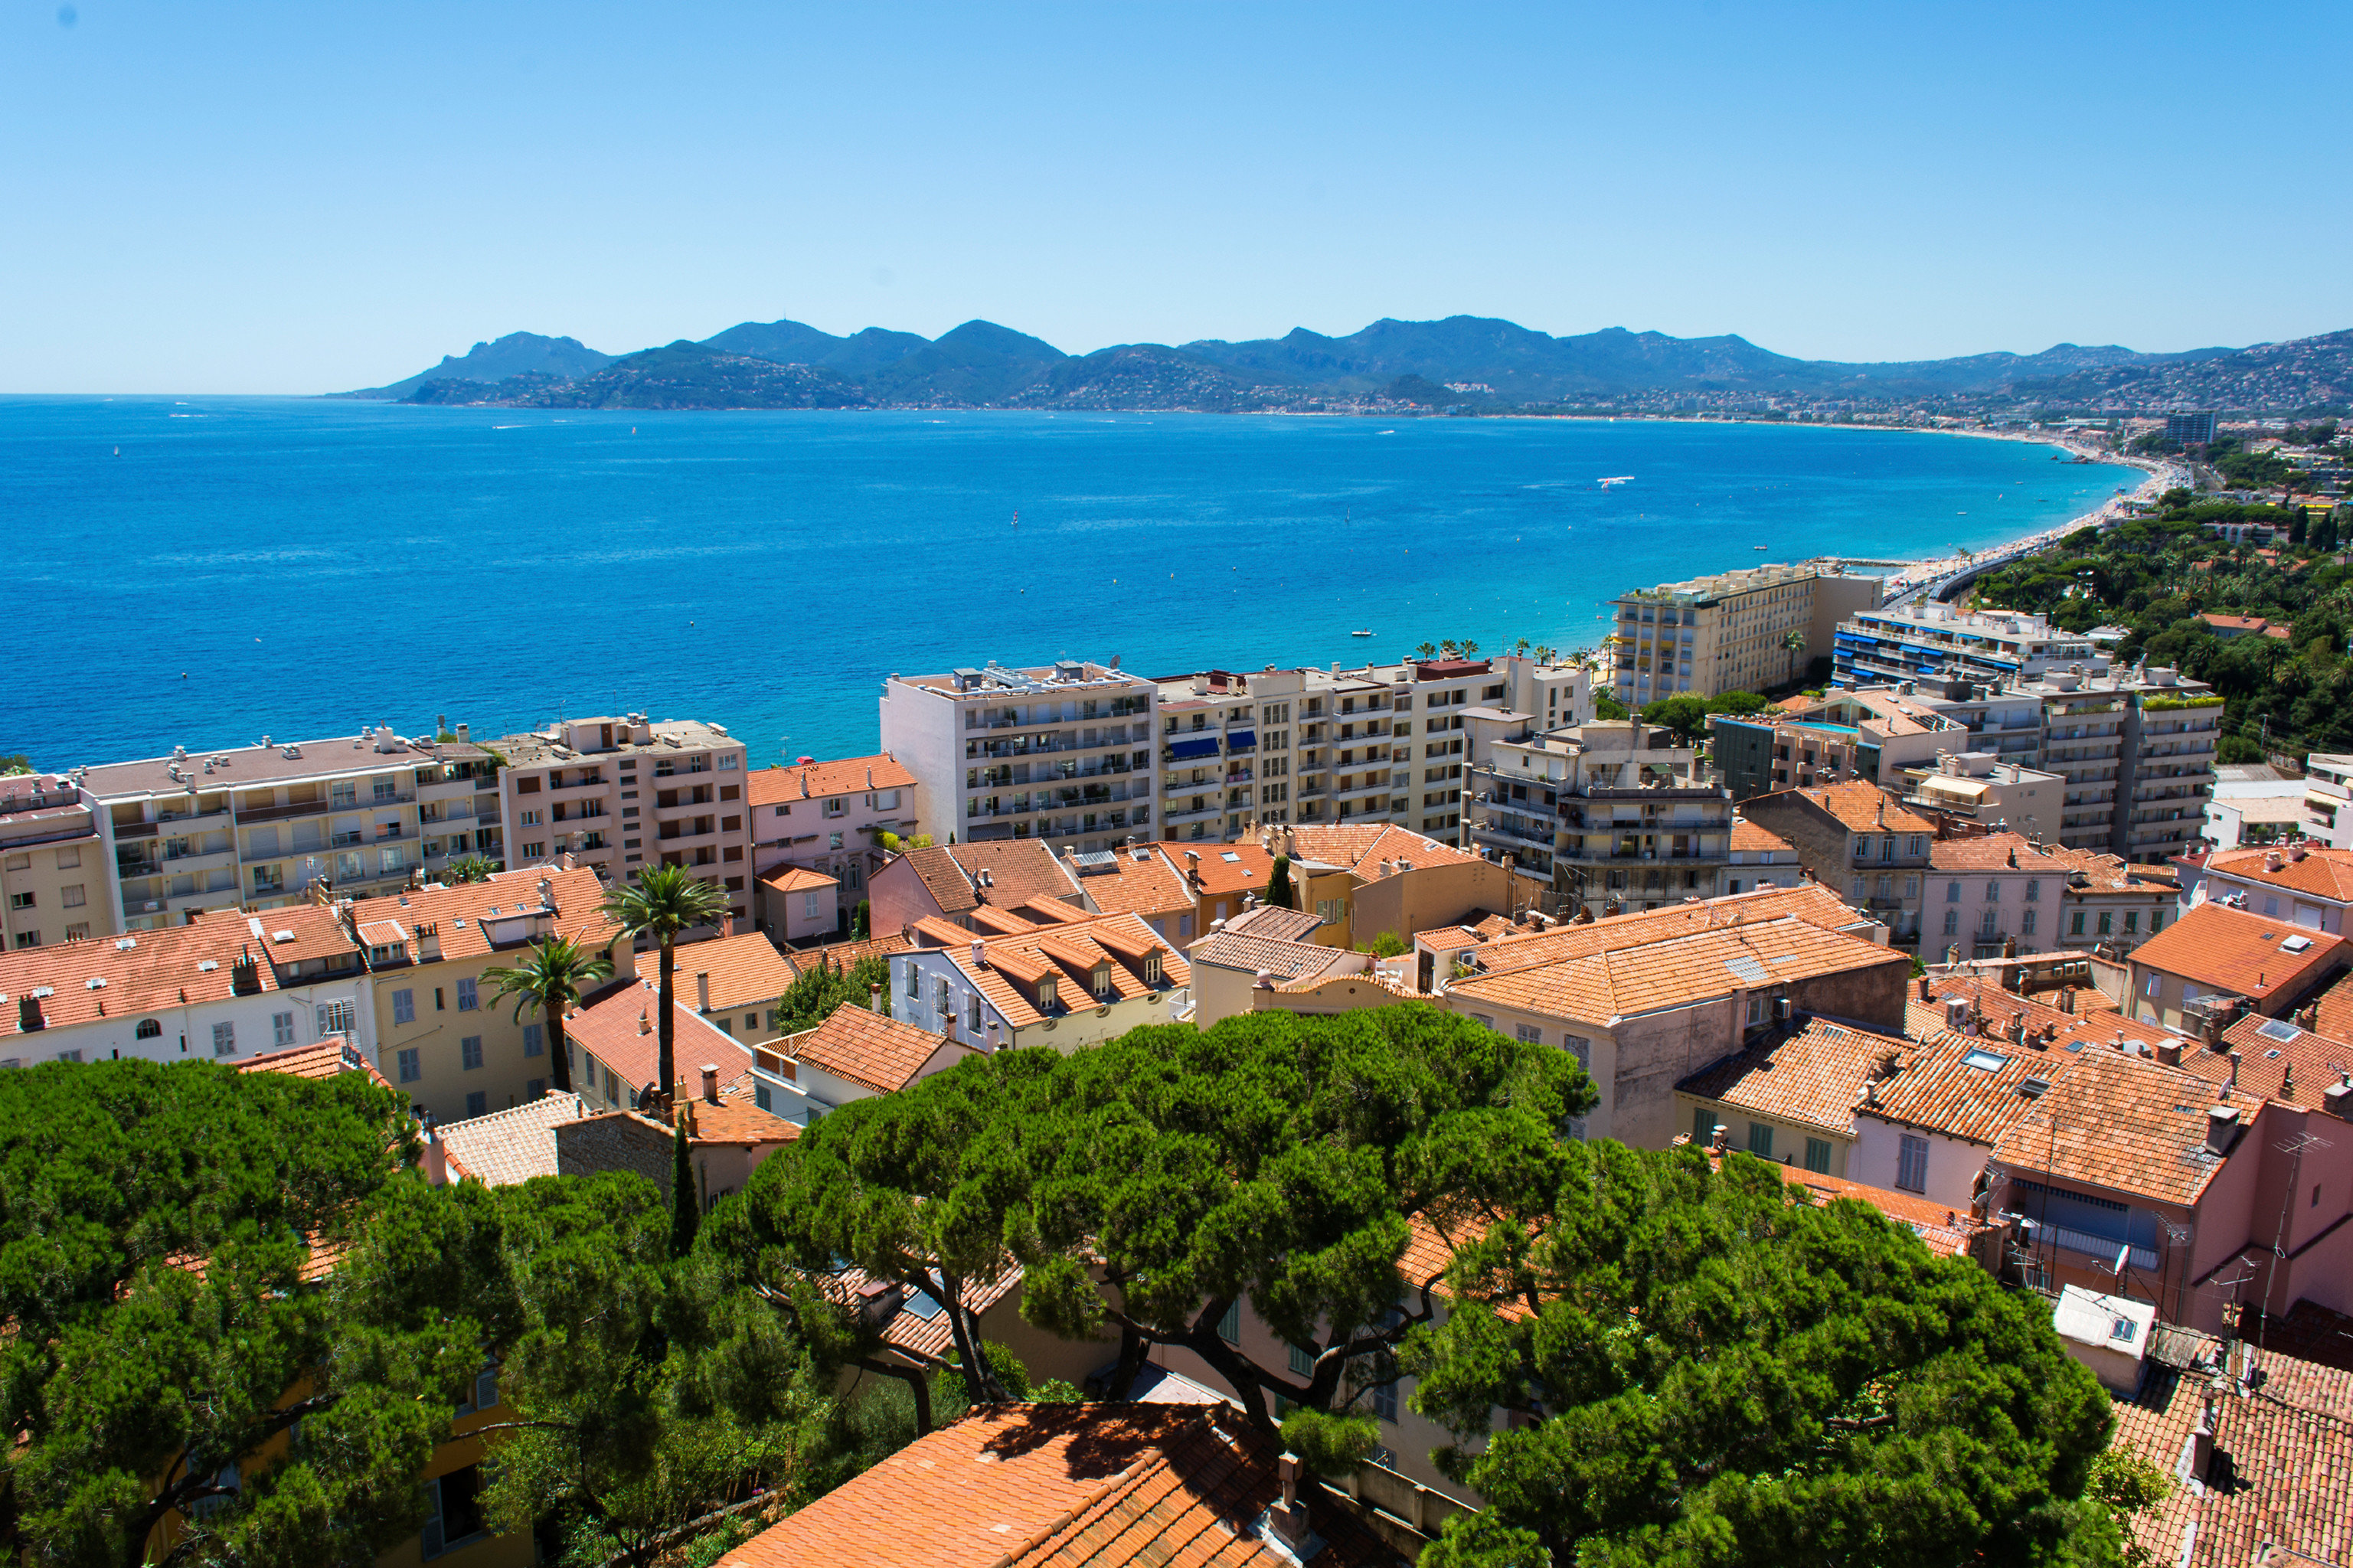 Beach Budget Scenic views sky mountain Town Coast Sea aerial photography overlooking residential area cityscape landscape Village City beautiful roof traveling hillside